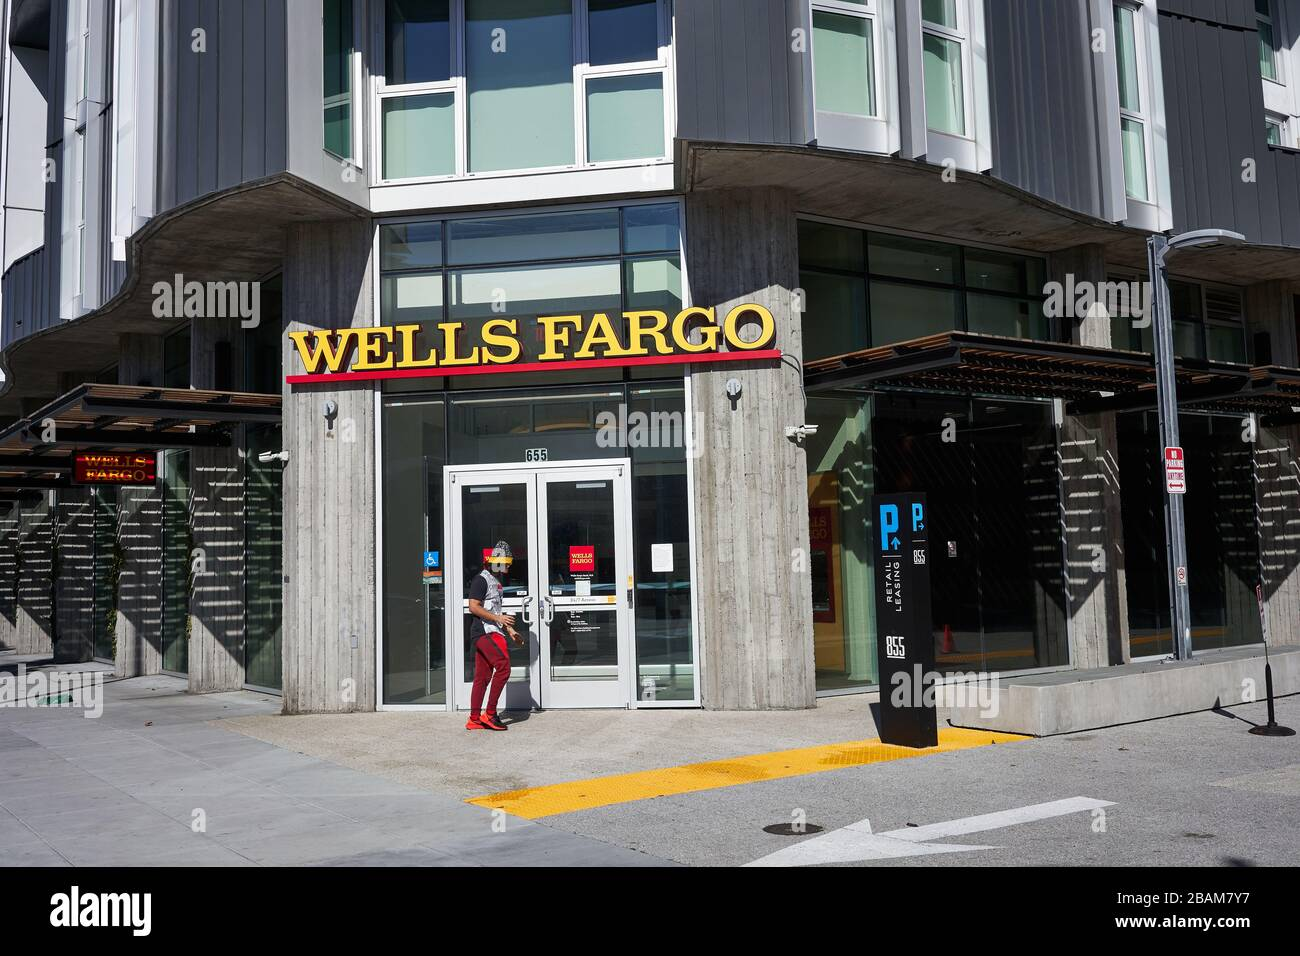 A man walks past a branch of Wells Fargo Bank in the SoMa District of San Francisco, California, on Sunday, Feb 9, 2020. Stock Photo